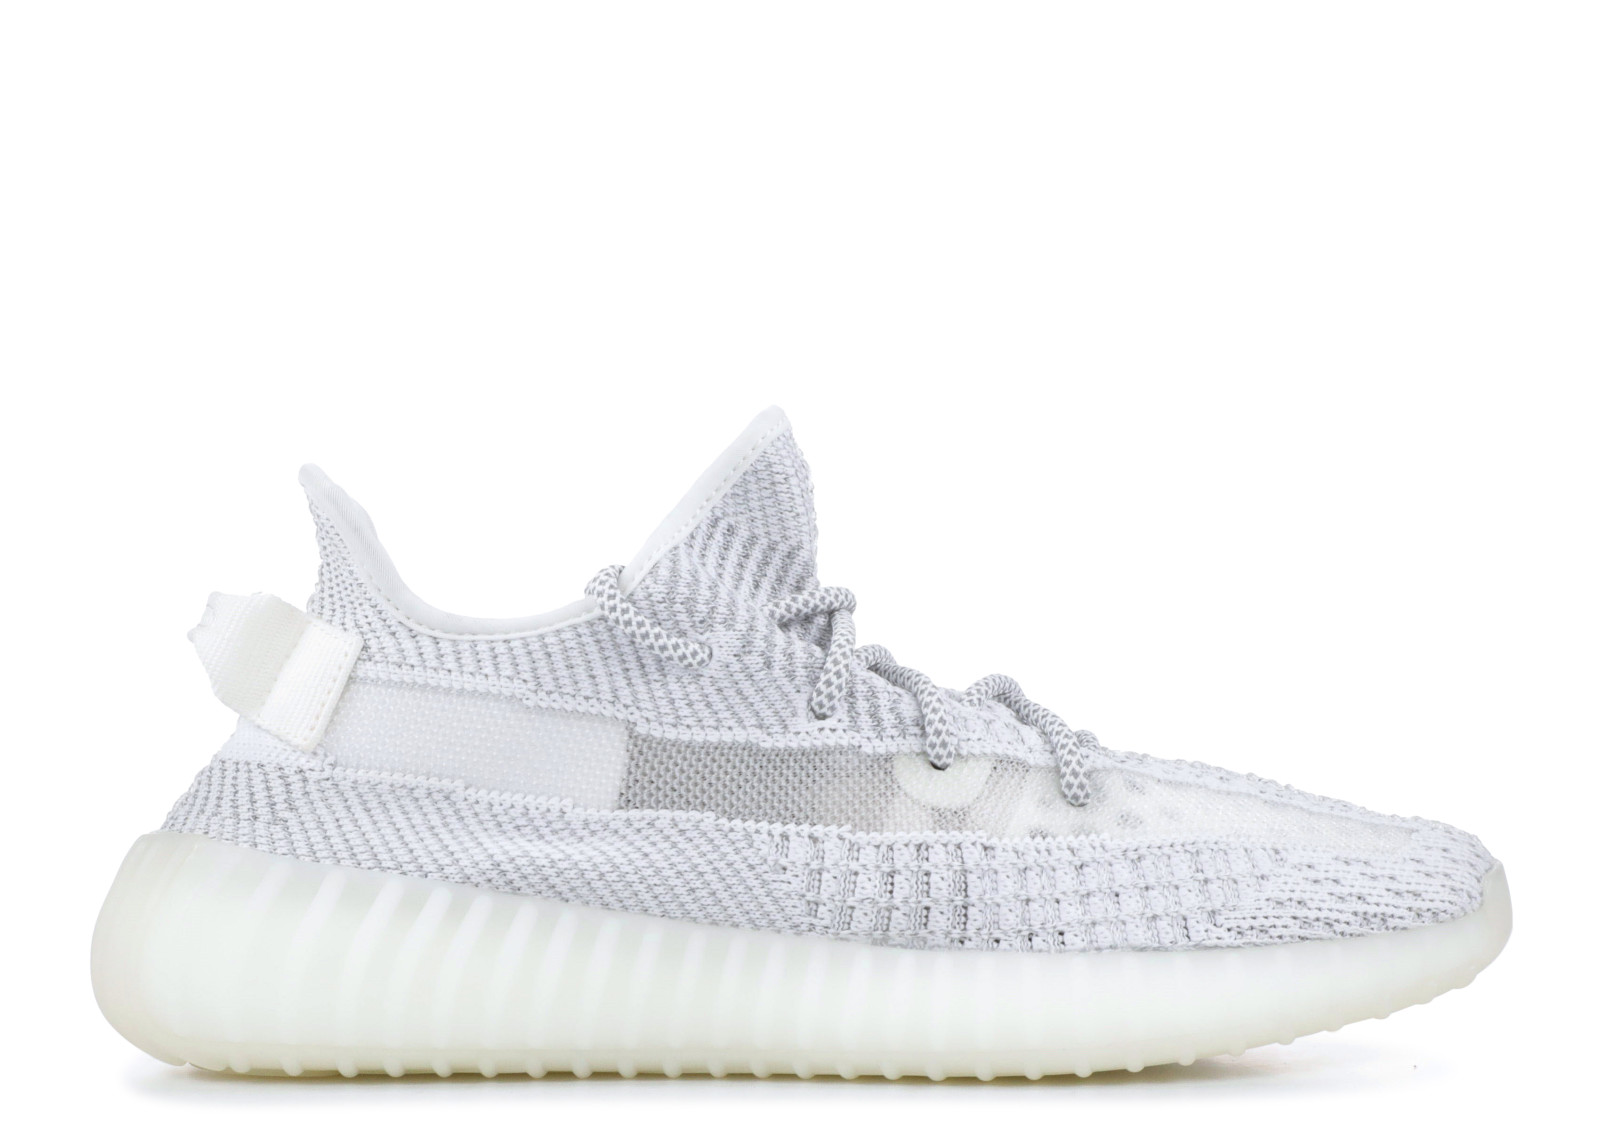 yeezy 350 v2 static reflective release date